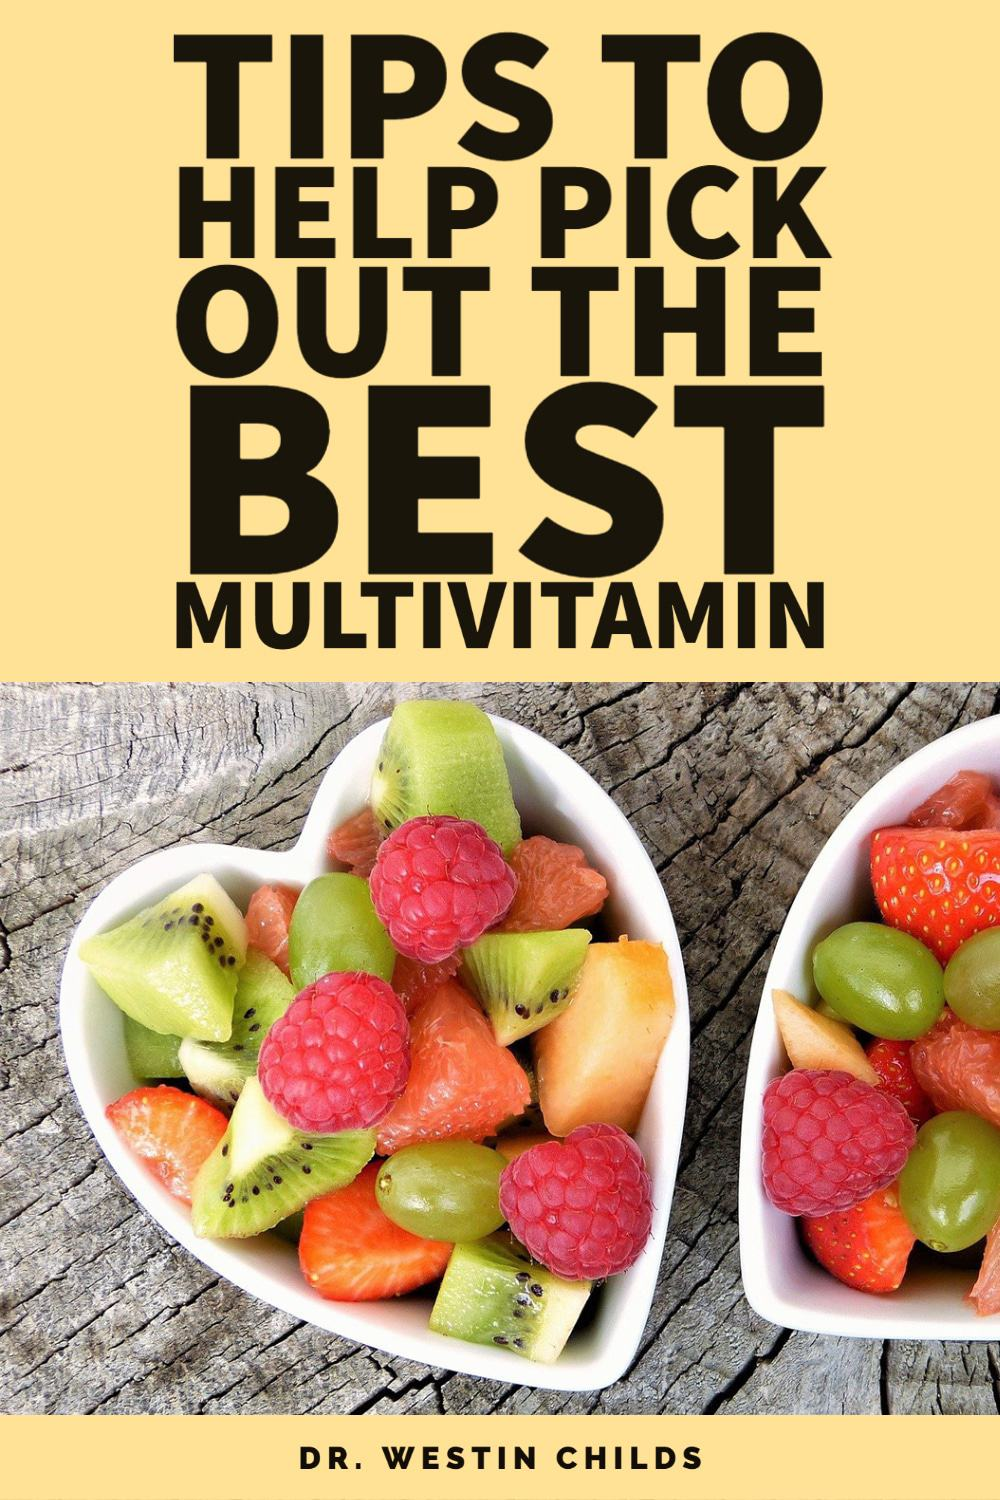 tips to help pick out the best multivitamin